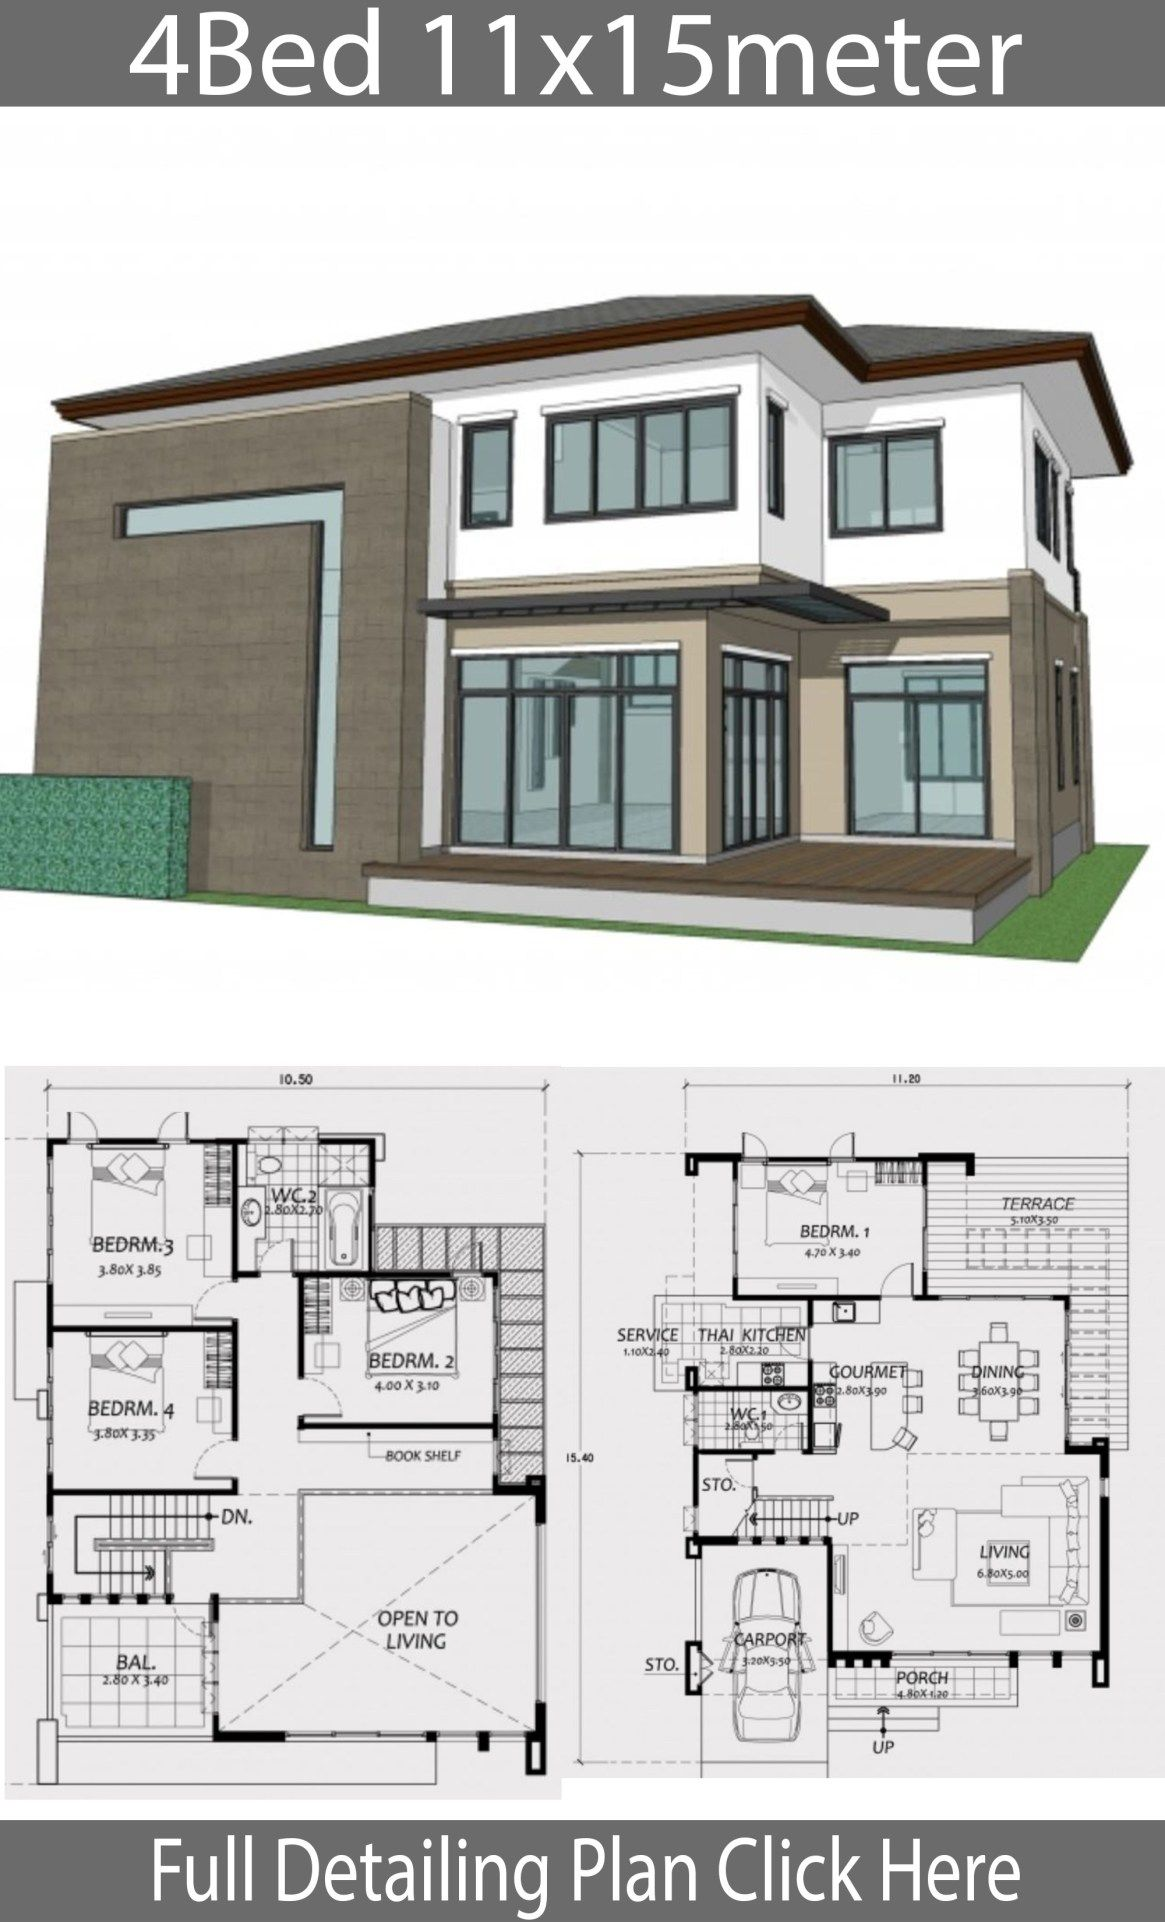 Home Design 11x15m With 4 Bedrooms Home Design With Plansearch Duplex House Design Bungalow House Design Two Story House Design